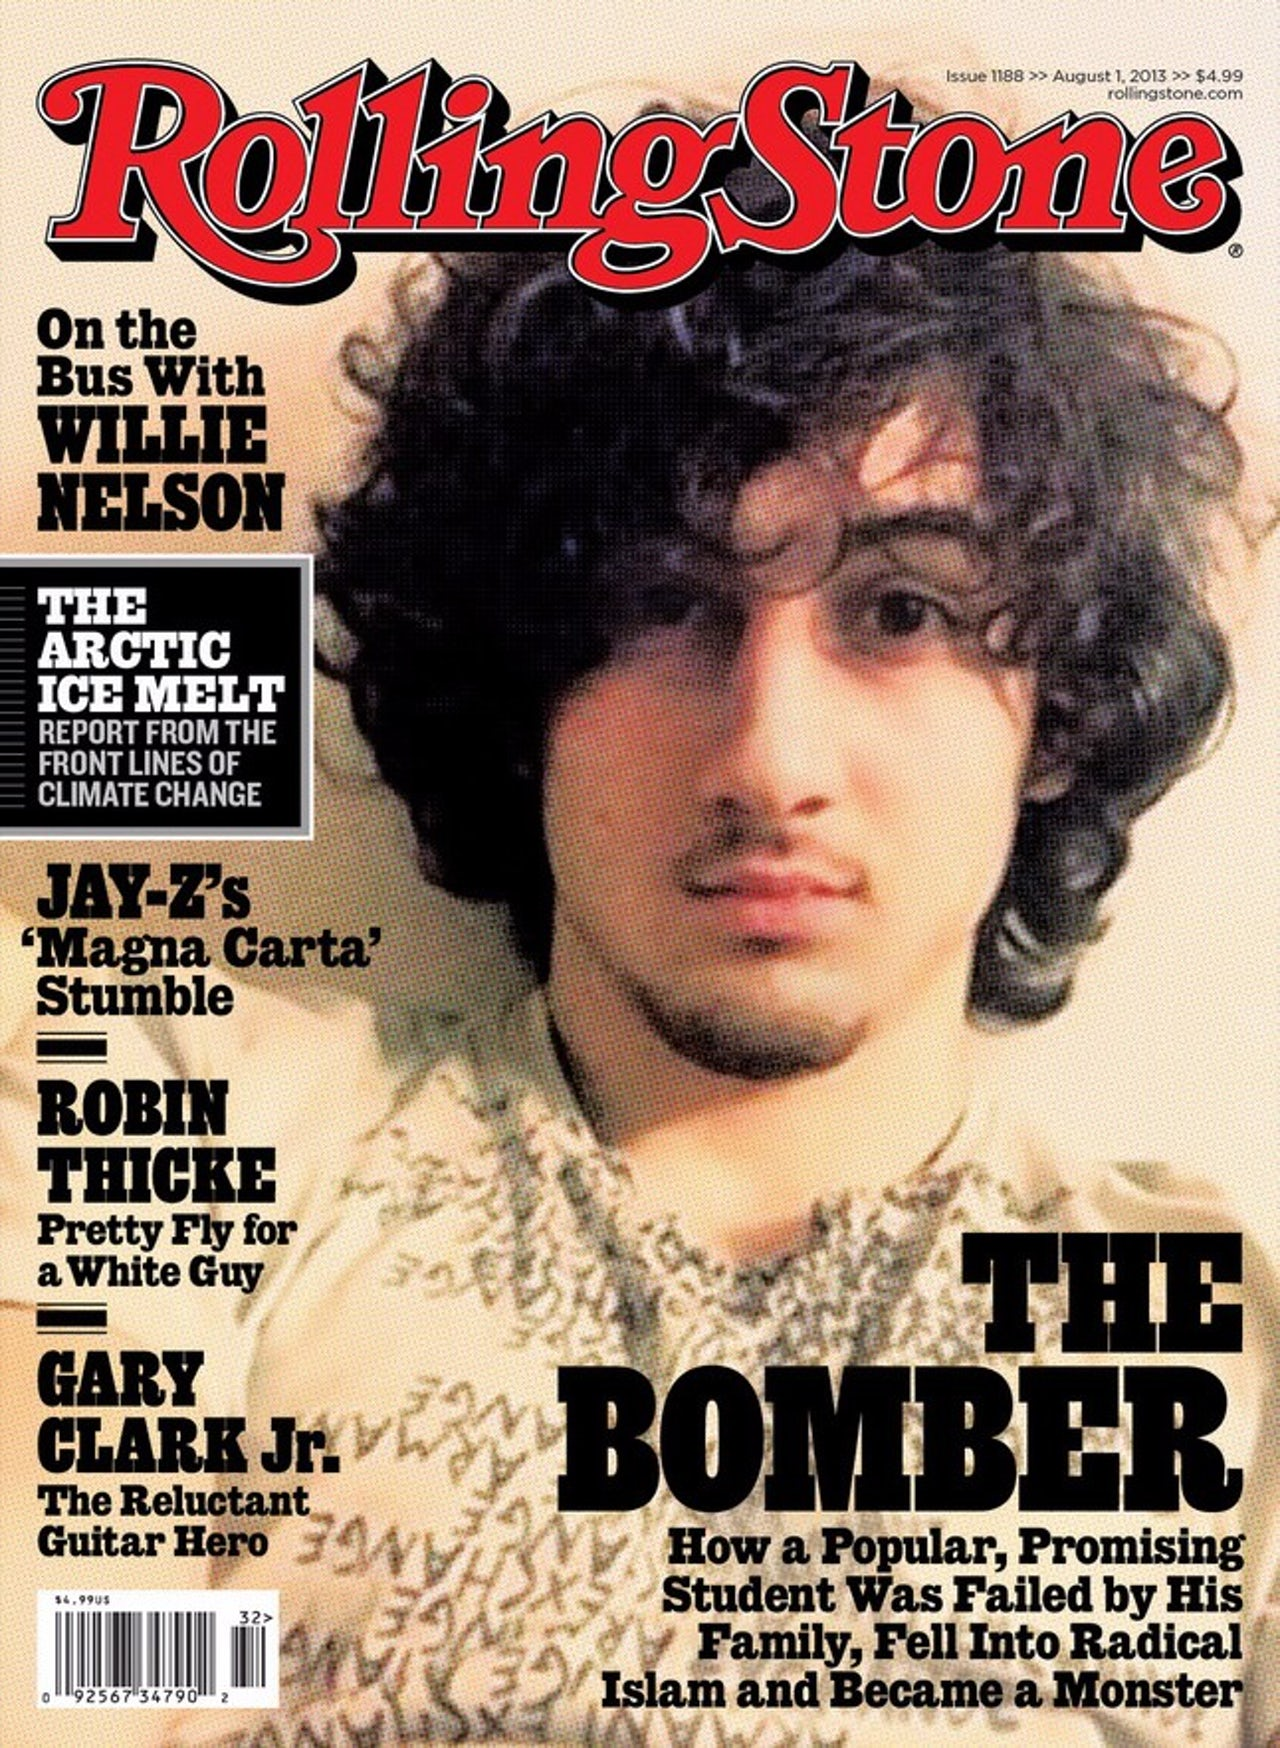 The August 2013 cover of Rolling Stone featuring Dzhokhar Tsarnaev, one of the brothers responsible for the bombing of the Boston Marathon in April of that year.